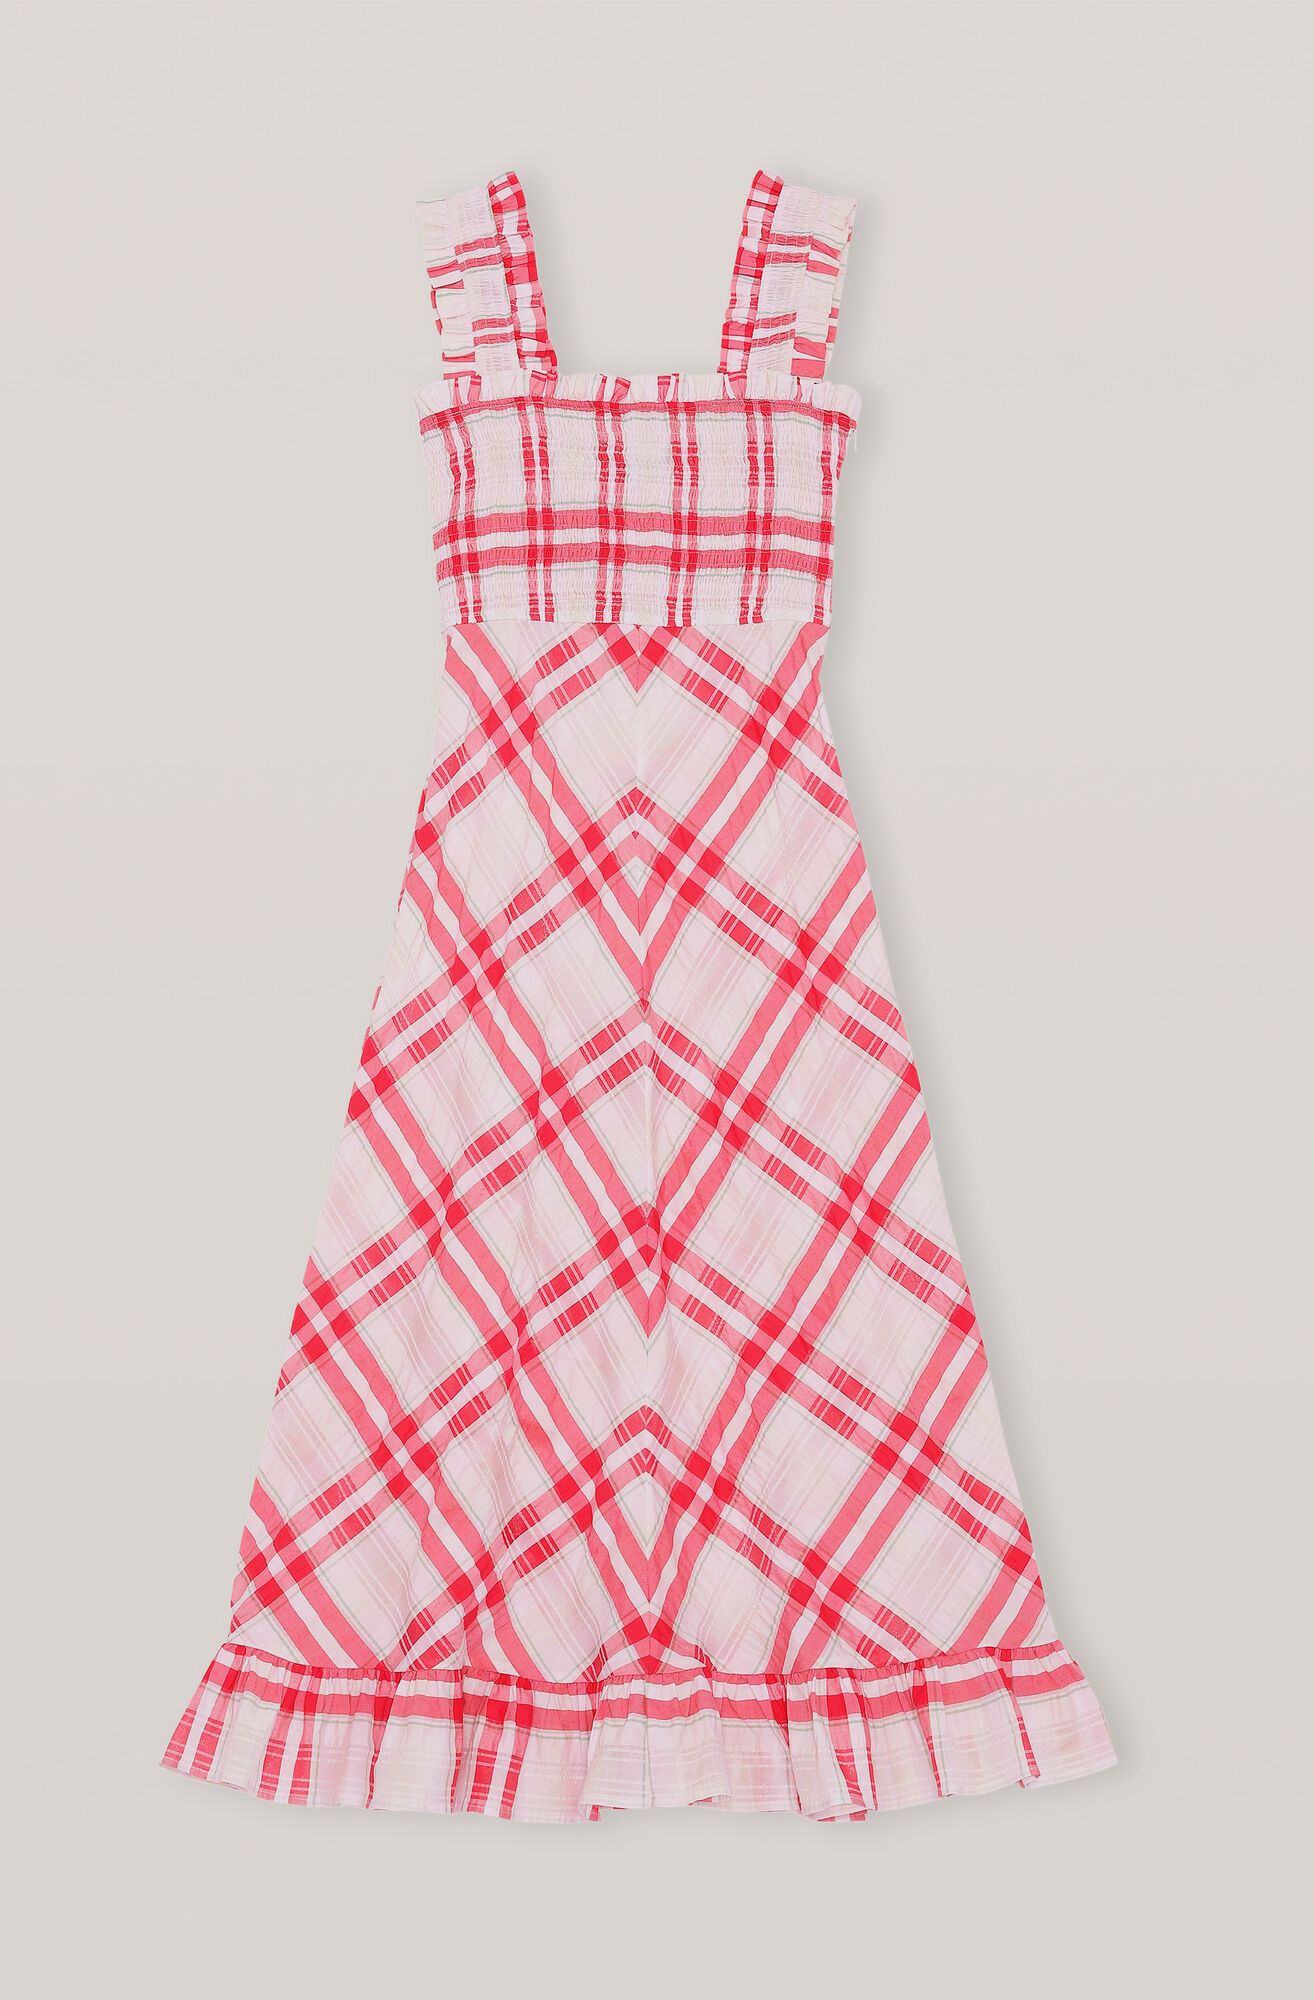 Ganni Seersucker Check Maxi Dress 215 00 Gbp Shop Your New Seersucker Check Maxi Dress At Ganni Com